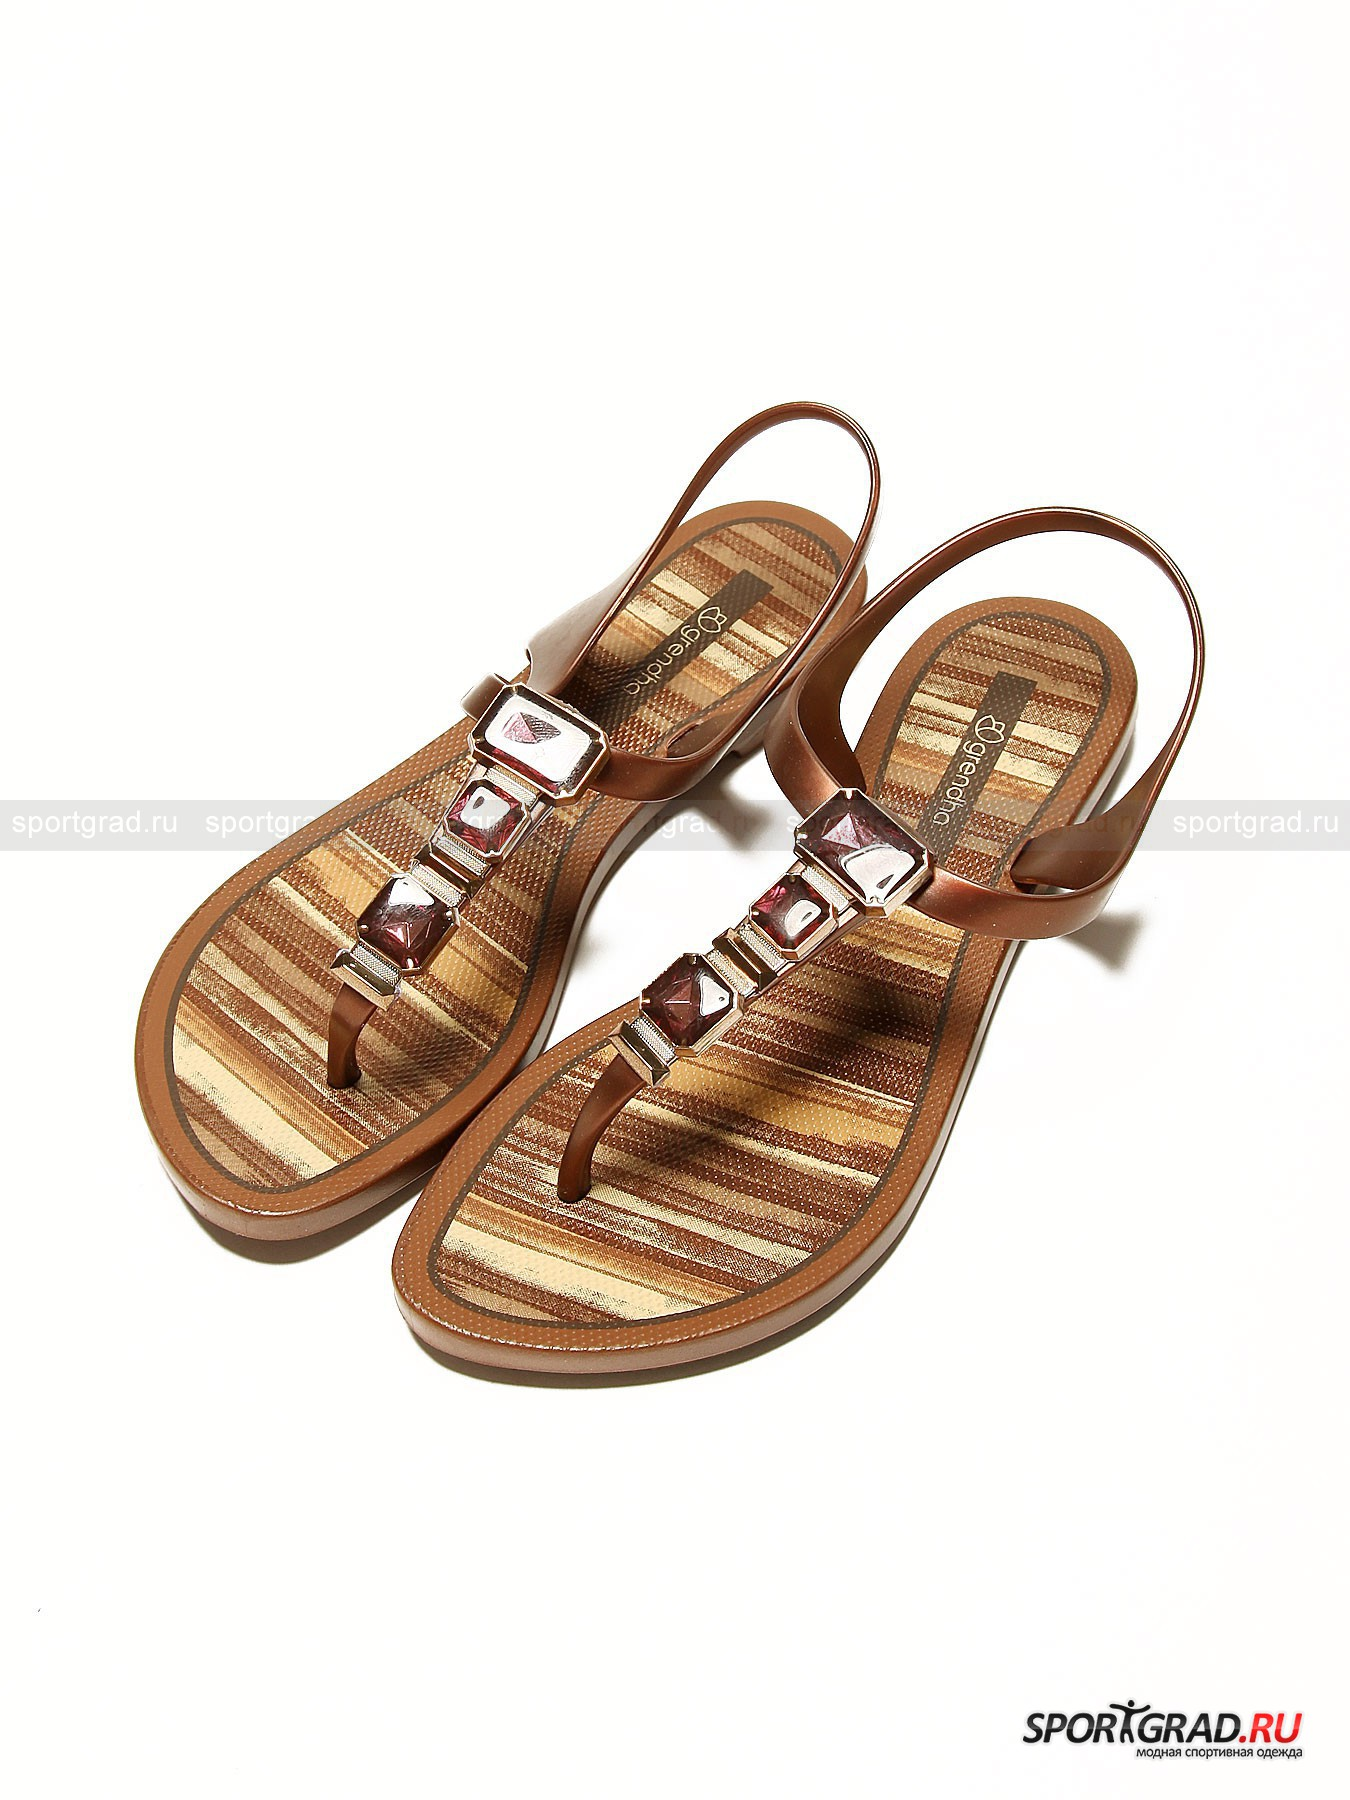 �������� ������� Jewel sandals female GRENDHA